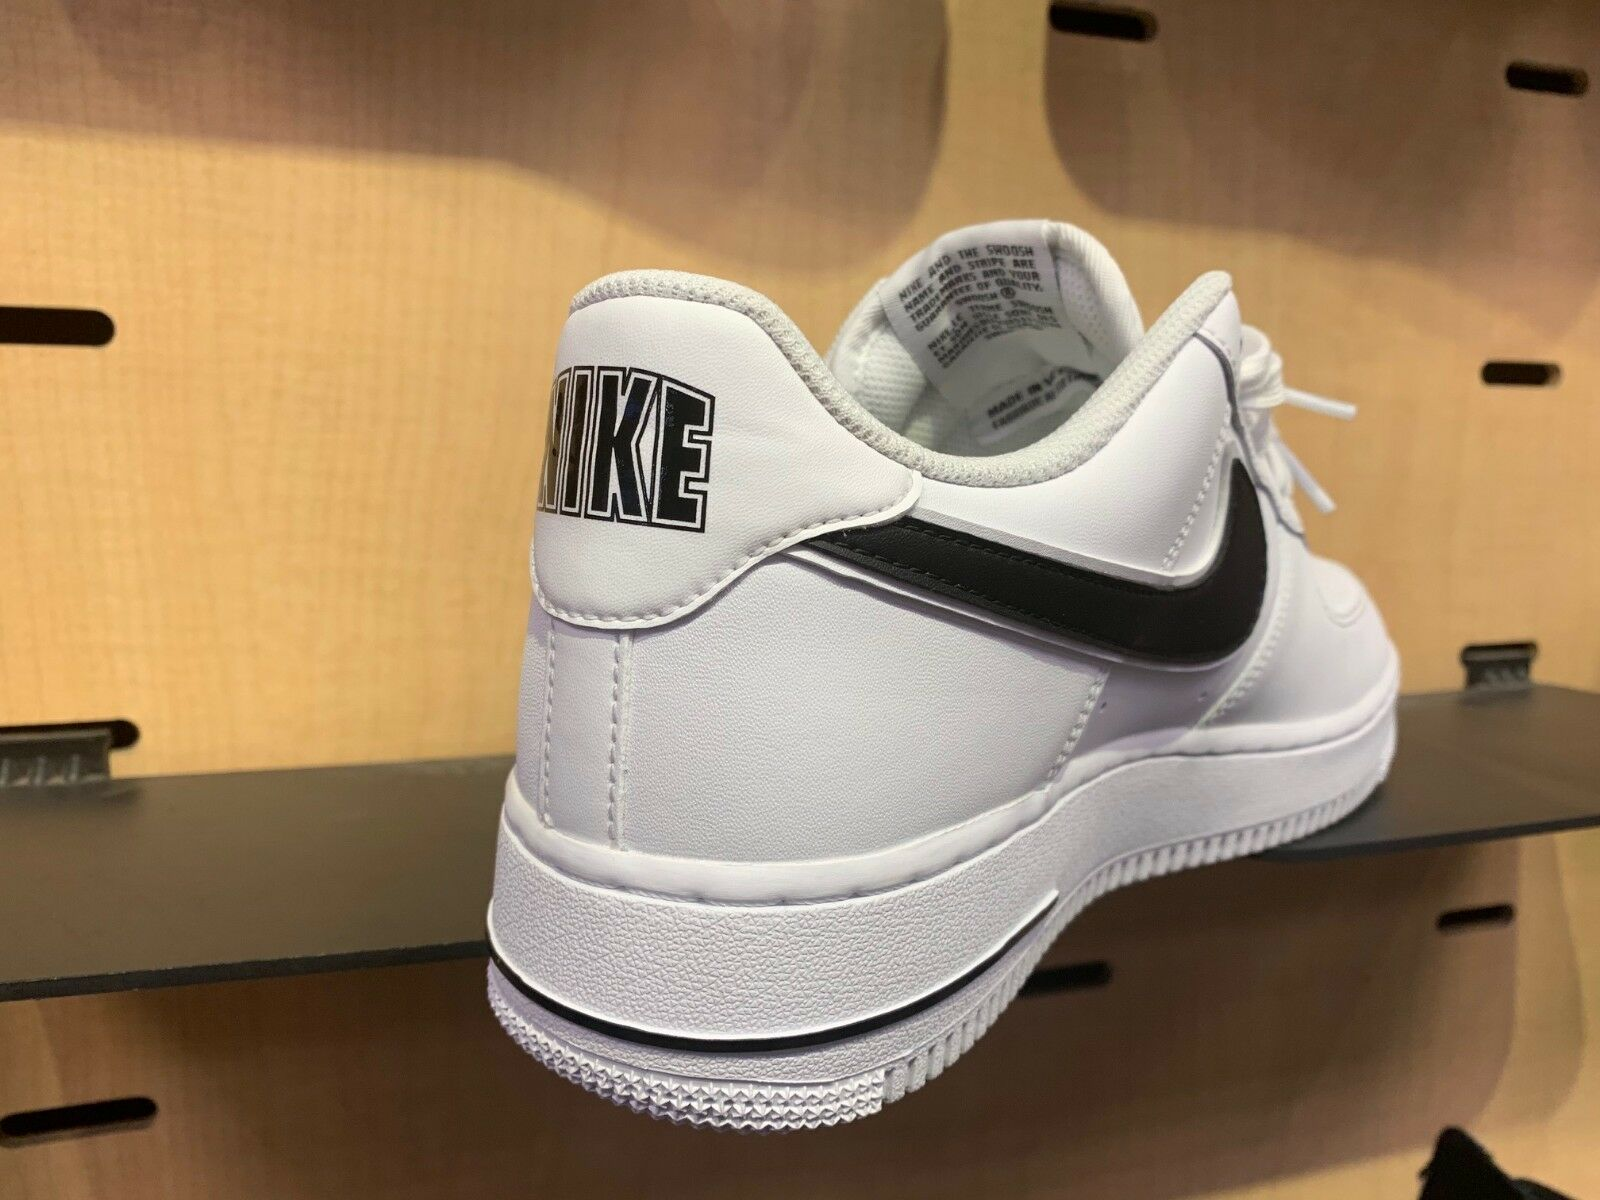 Nike Air Force 1 Low White Black Special Logo Size 8-13 New DS O2423-101